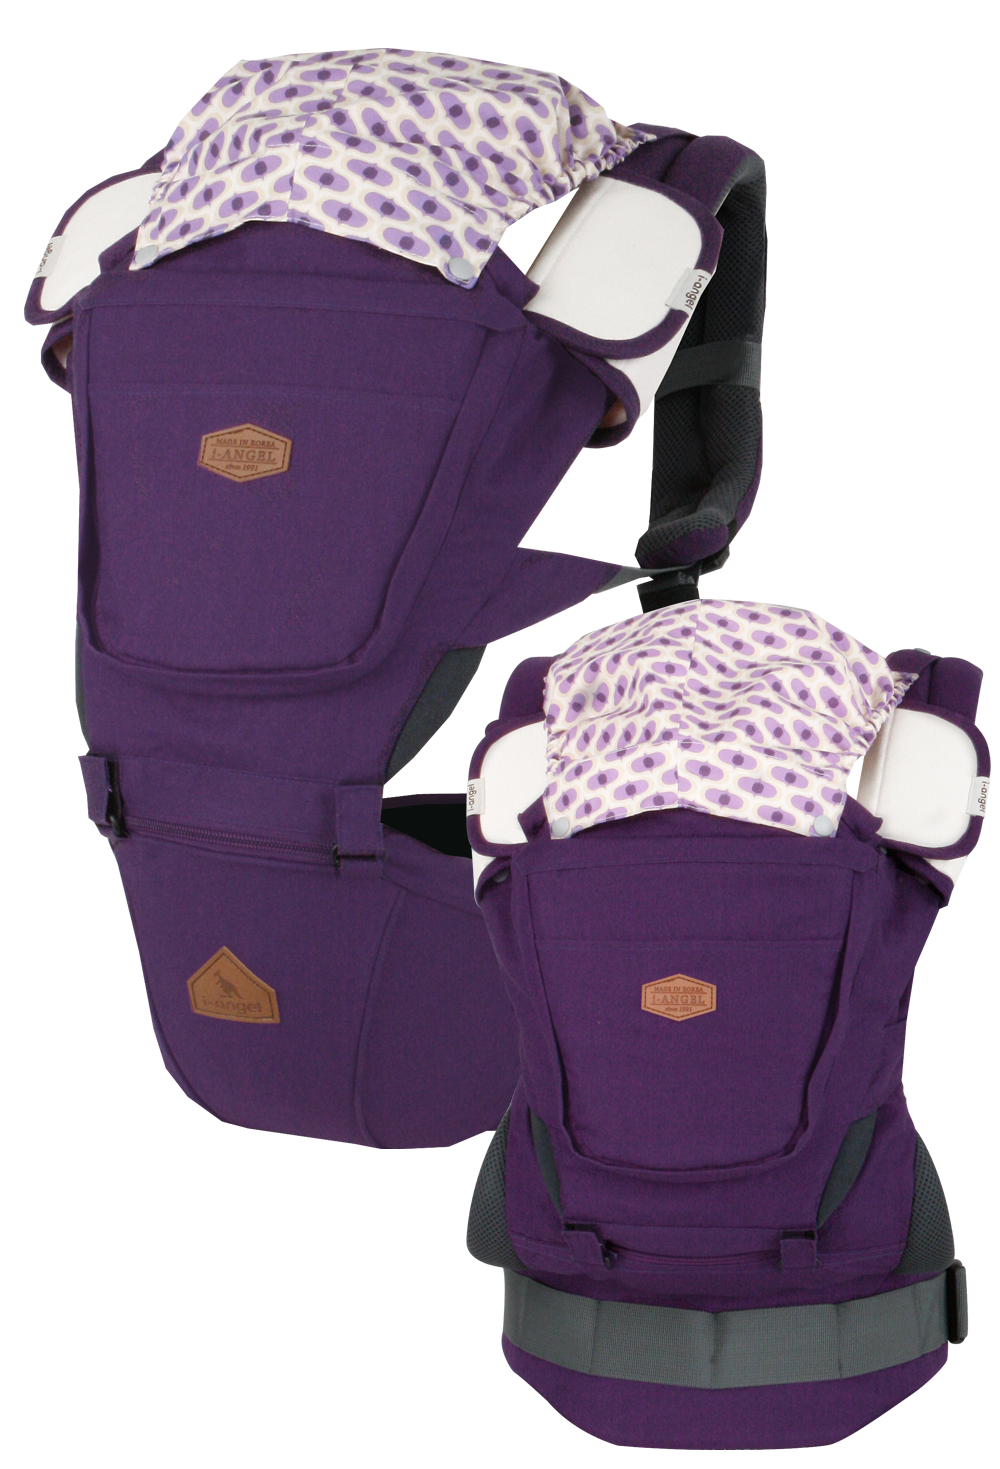 I-ANGEL RAINBOW INTERCHANGEABLE BABY CARRIER+HIPSEAT CARRIER  (VIOLET)